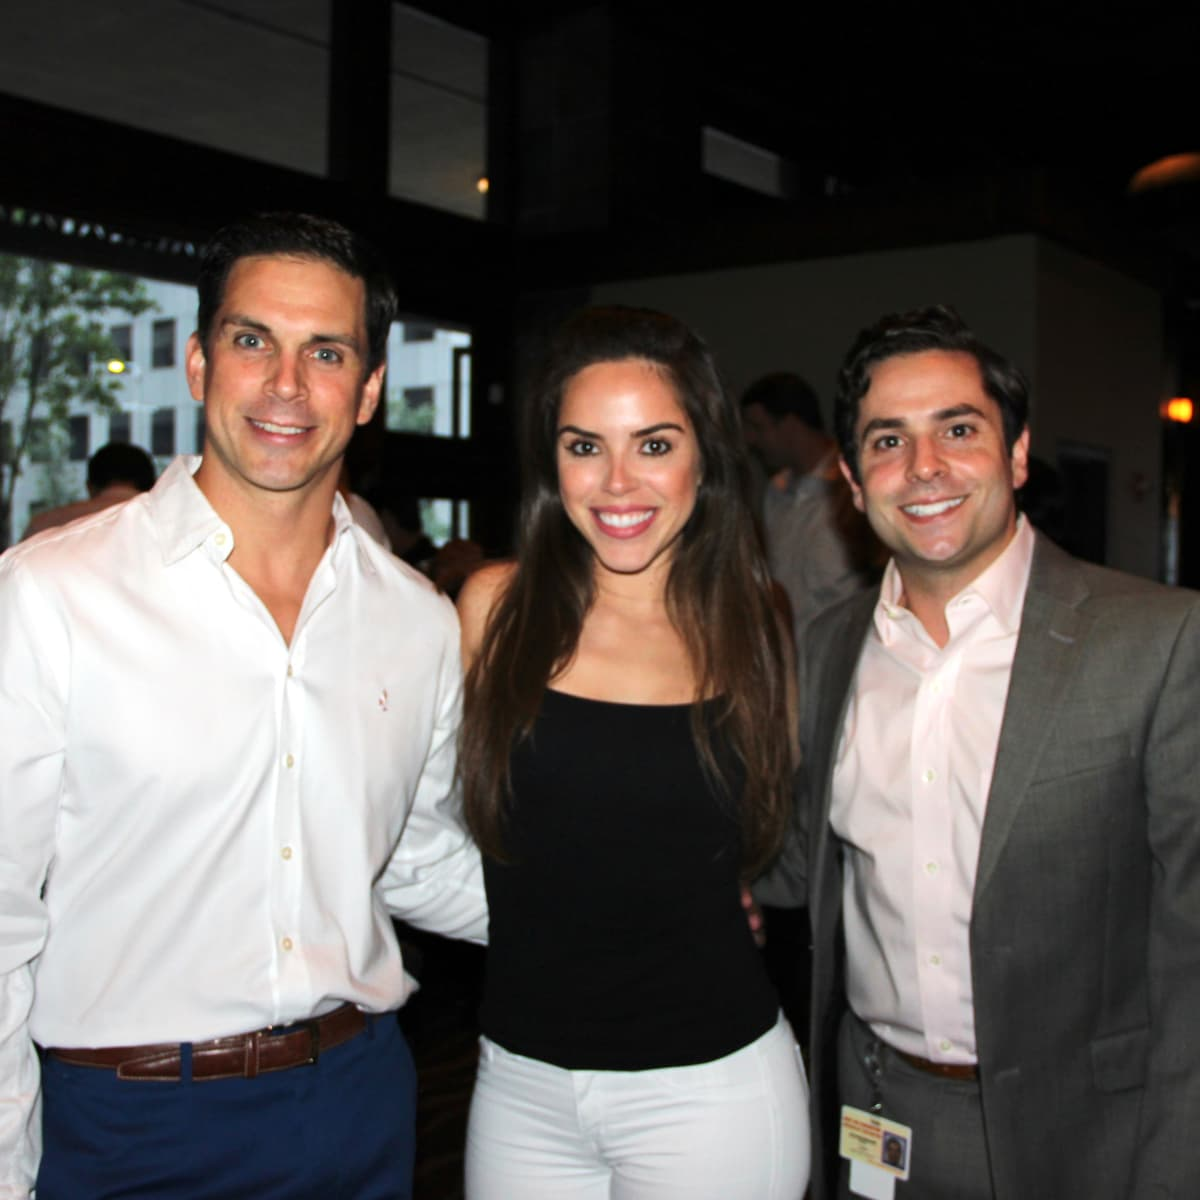 Houston, Friends of Depelchin Back to School Happy Hour, August 2015, Caleb Bynum, Mandy Ramirez, Marc Eichenbaum